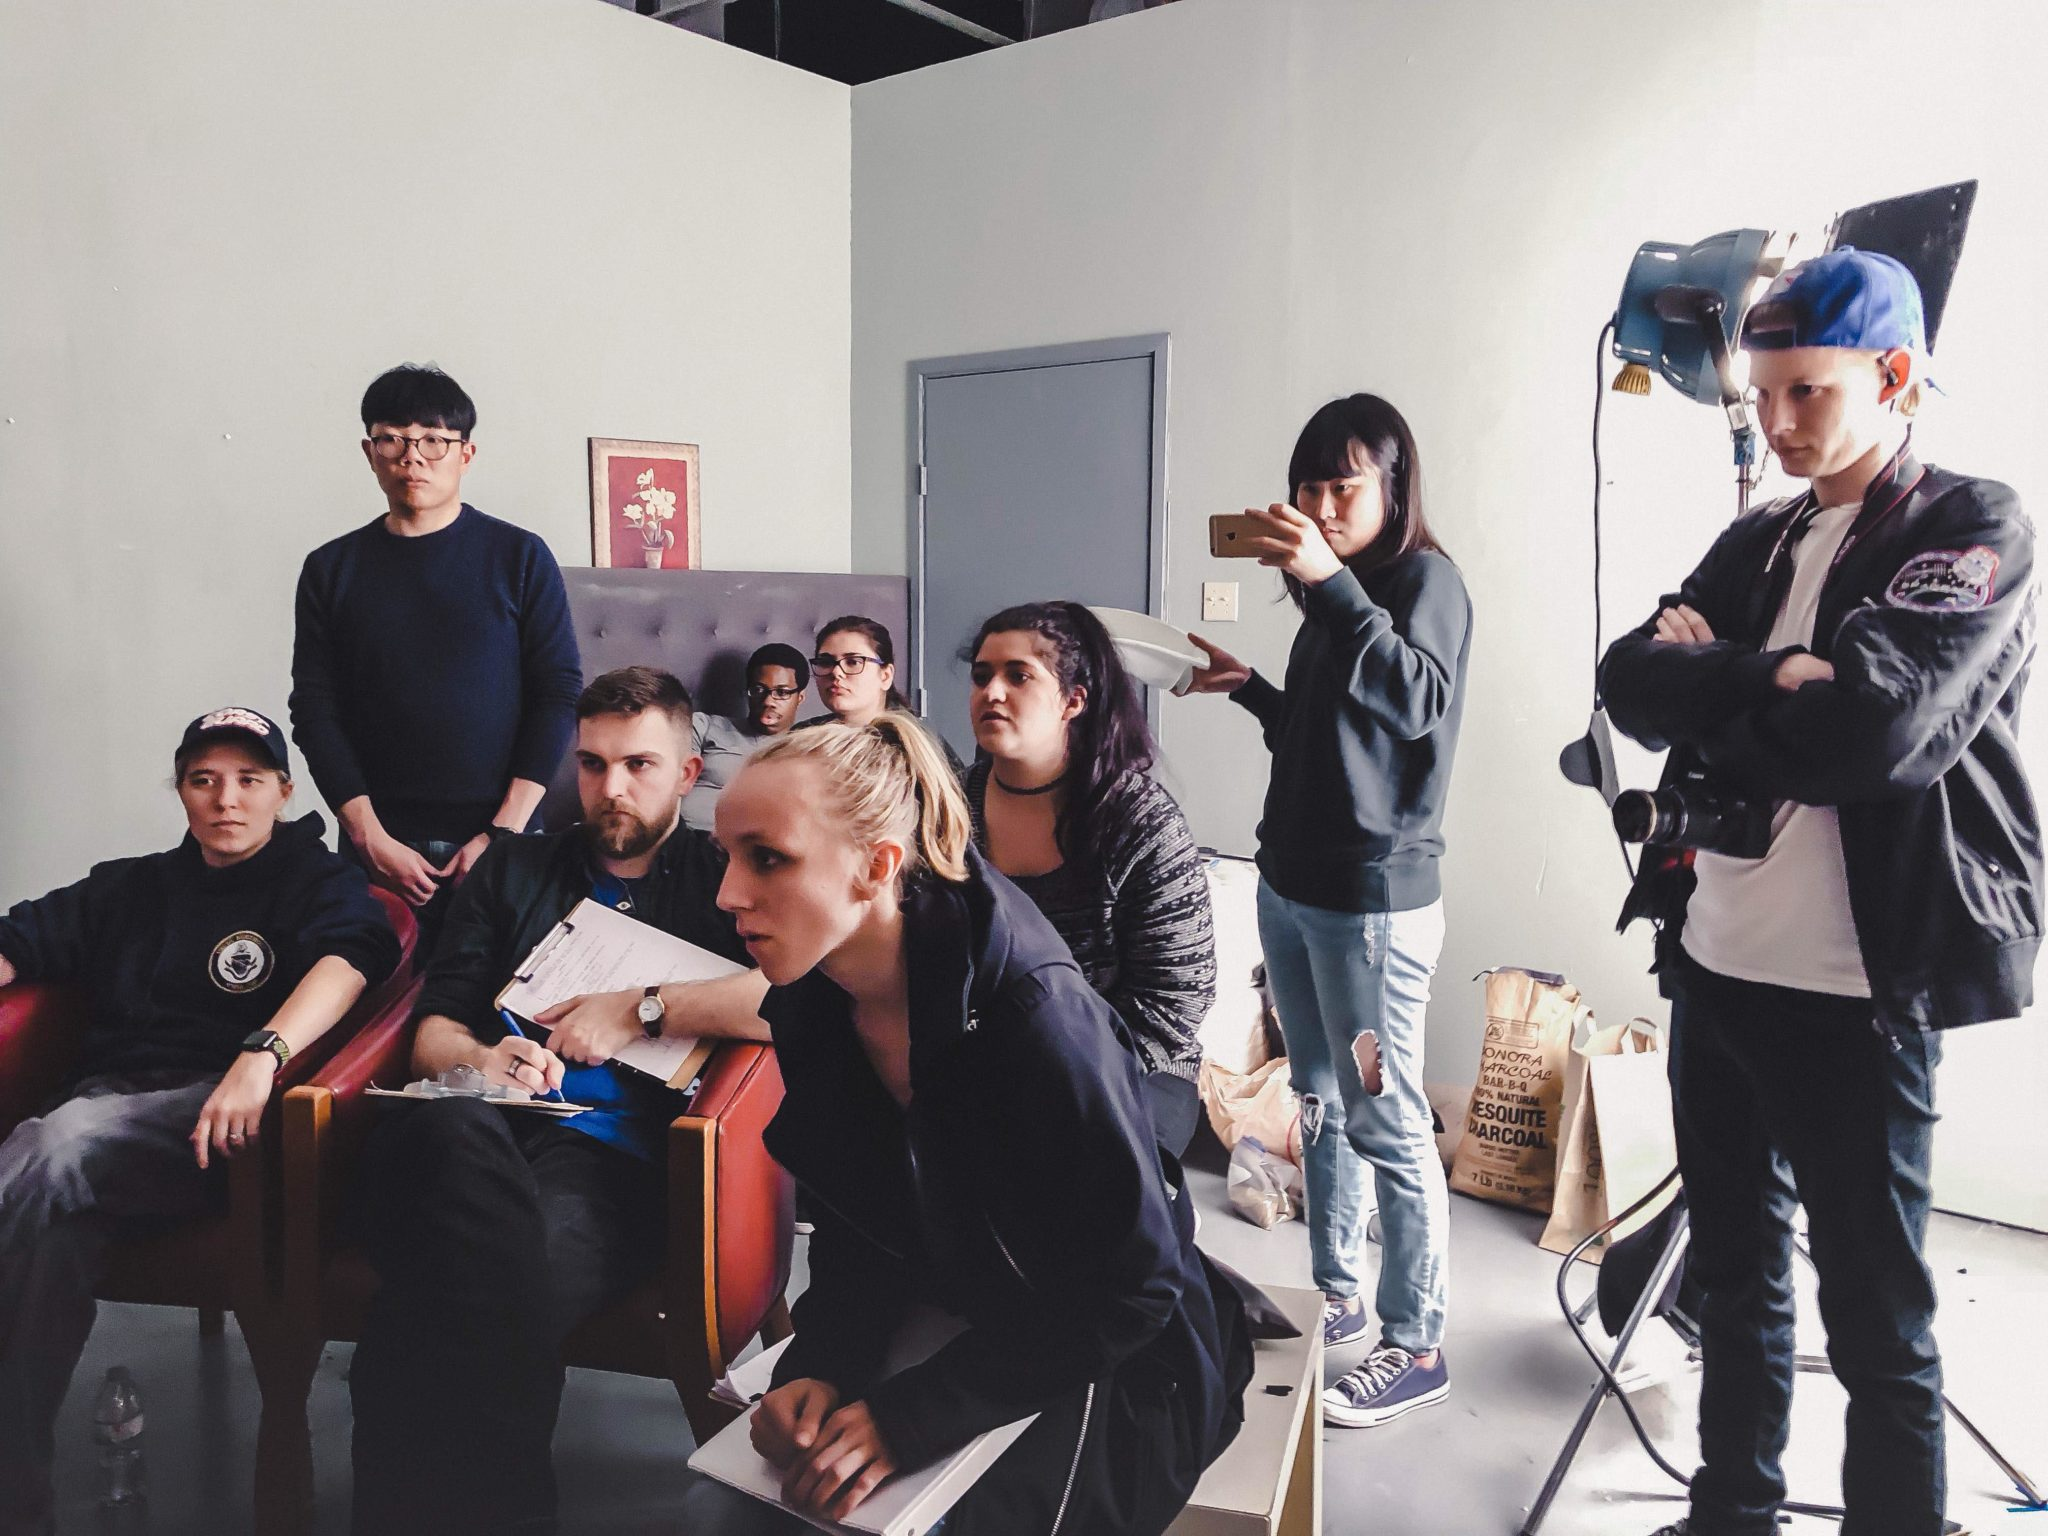 Careers in Film: Growth, Trends and Career Paths